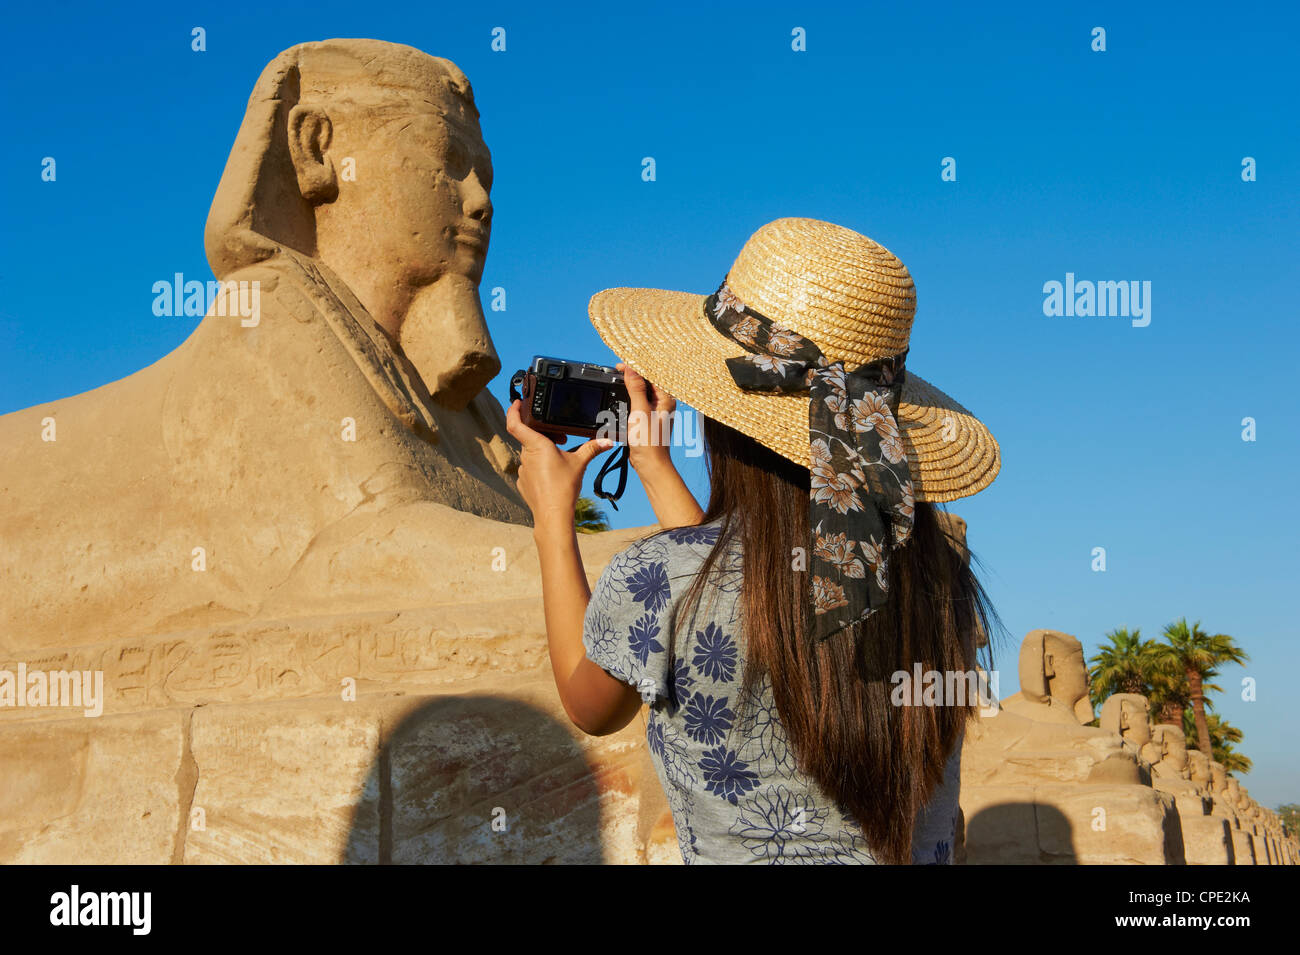 Tourist taking a photo on the Sphinx path, Temple of Luxor, Luxor, Thebes, UNESCO World Heritage Site, Egypt, Africa - Stock Image